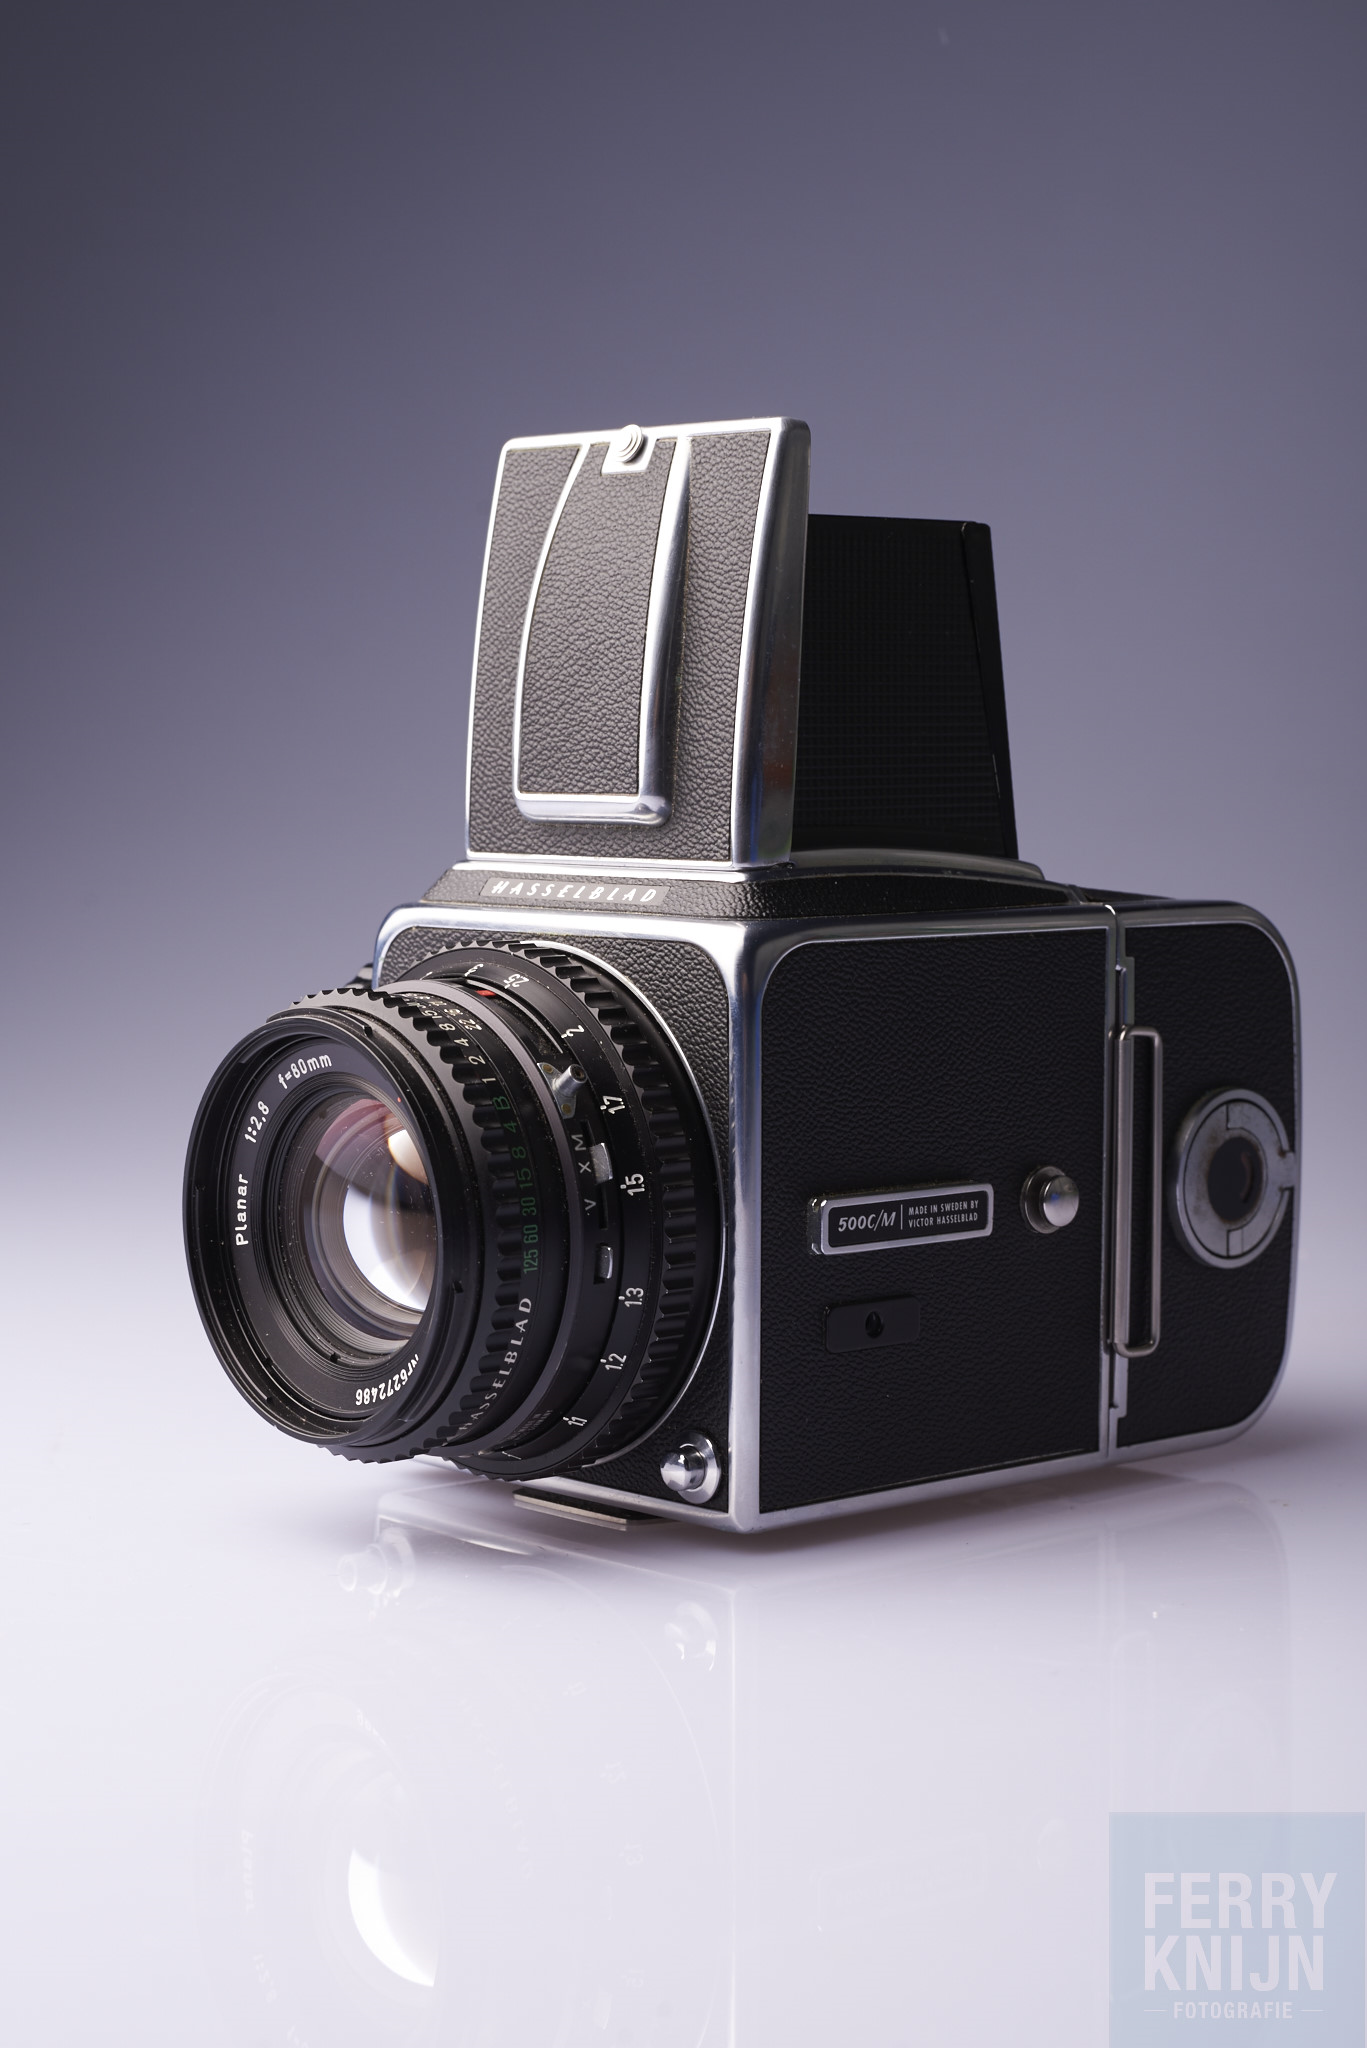 Review: Hasselblad 500c/m with a Phase One P30+ Digital Back